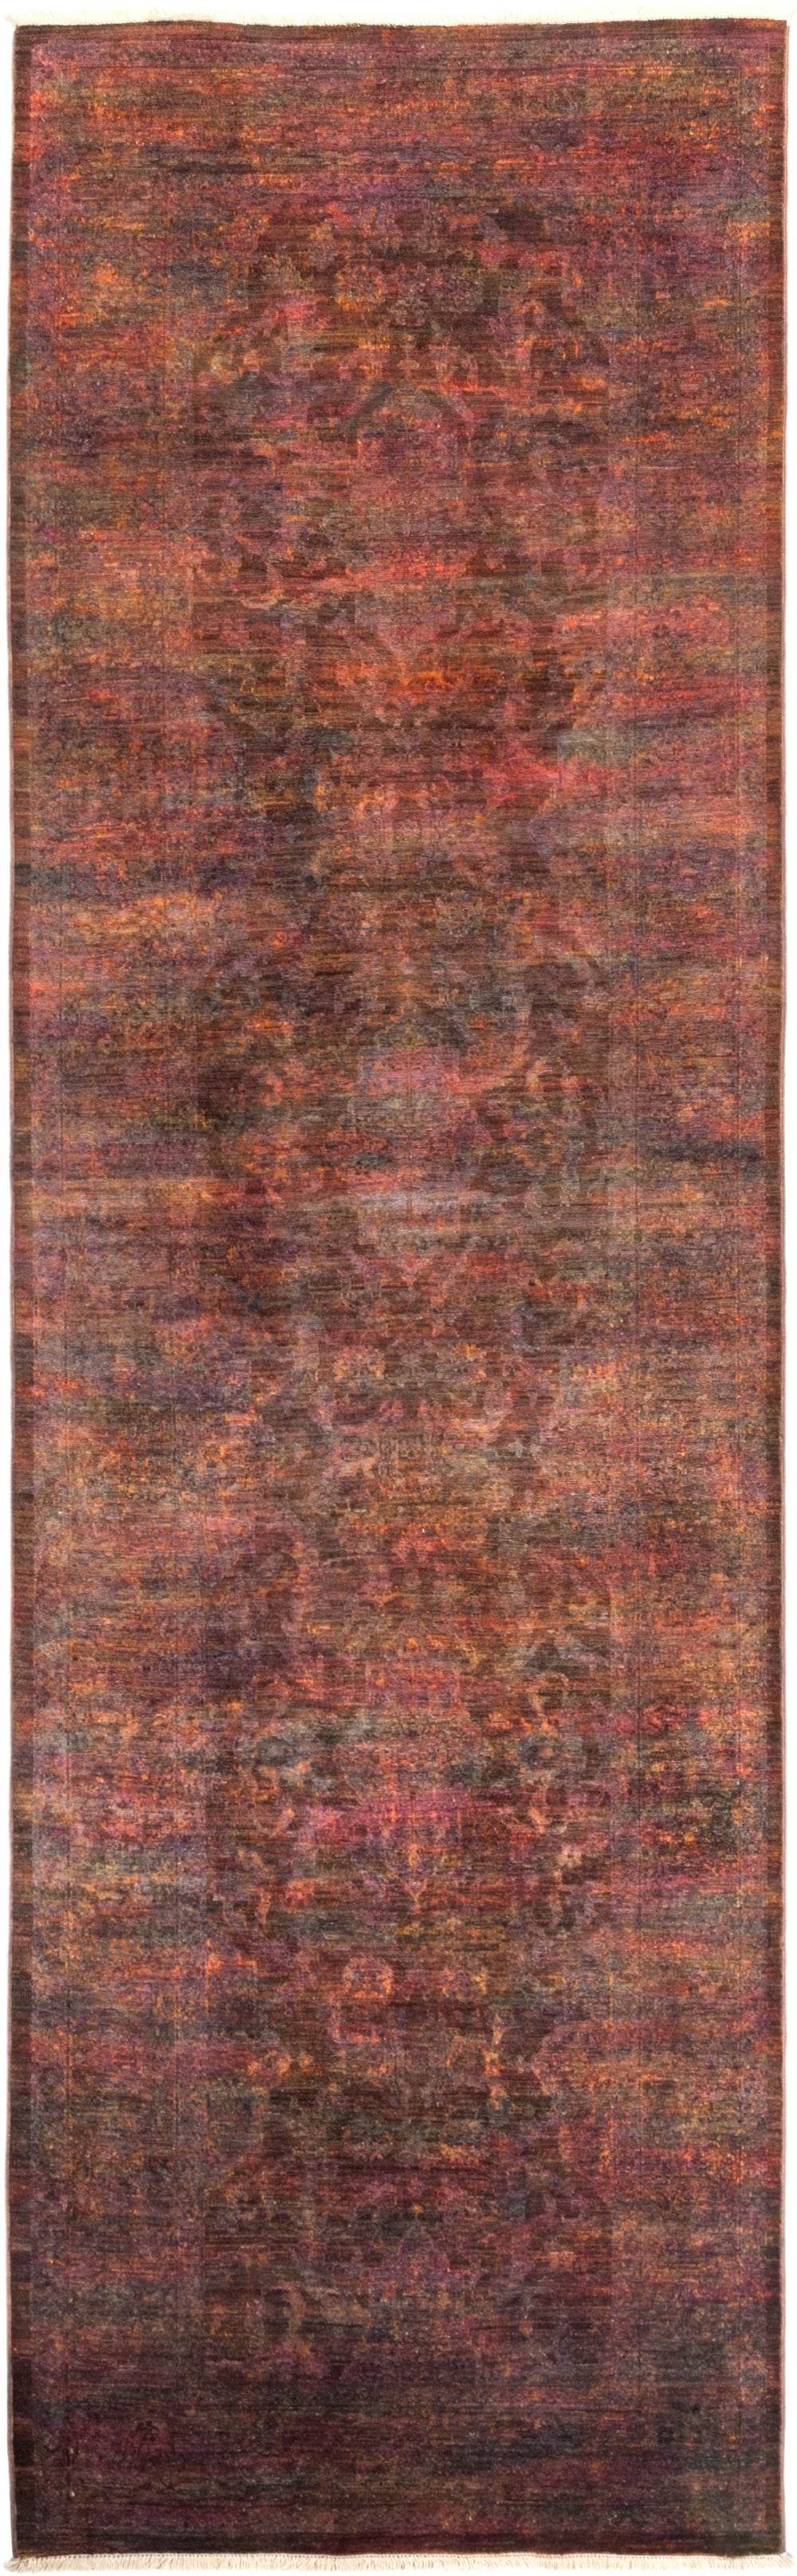 "Vibrance, Brown Wool Runner Rug - 3' 2"" x 10' 8"""